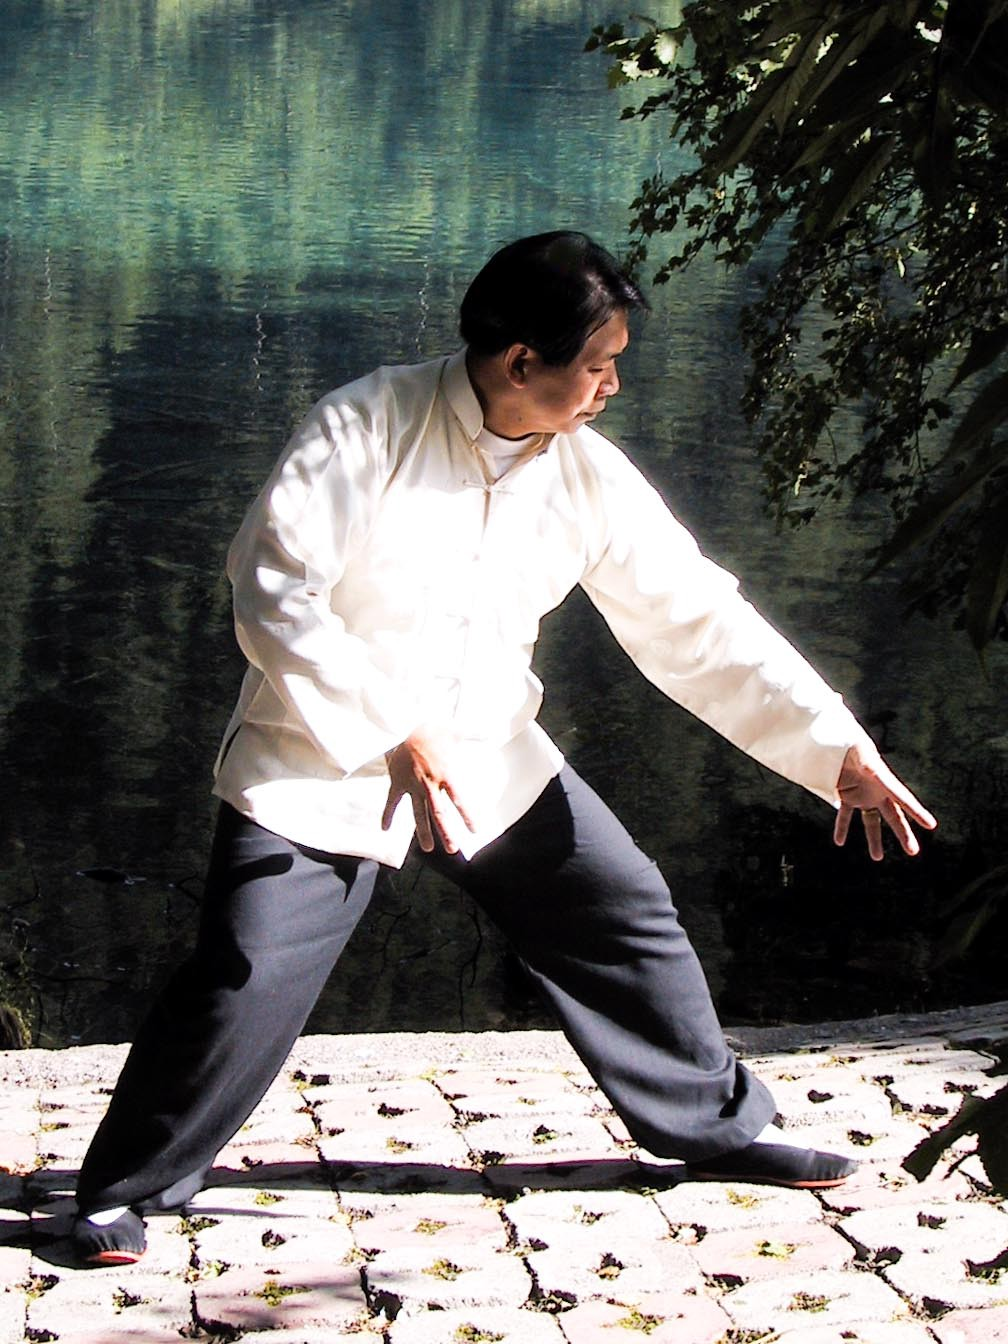 Master Lam Standing in 'Holding the Tiger' Position